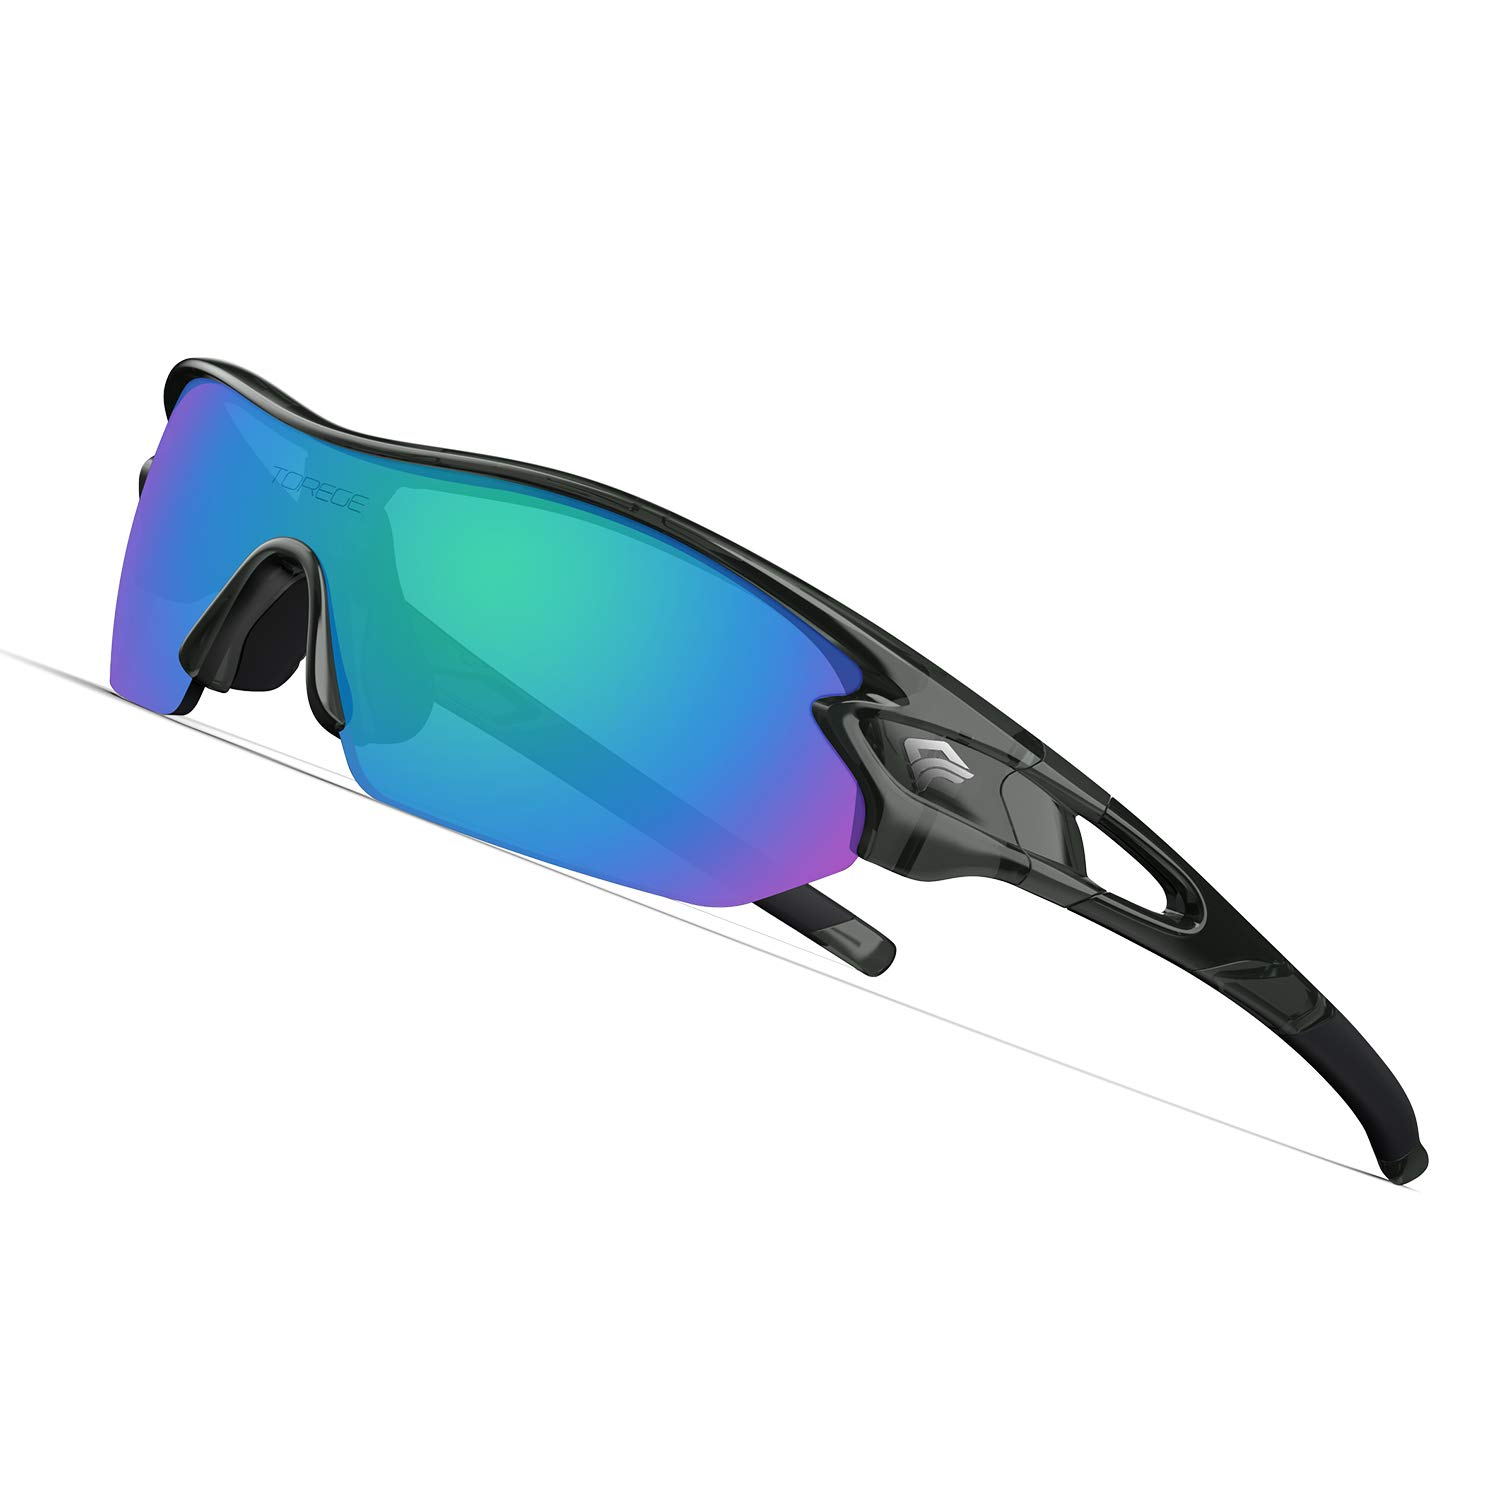 TOREGE Polarized Sports Sunglasses with 3 Interchangeable Lenes for Men Women Cycling Running Driving Fishing Golf Baseball Glasses TR002 (Transparent Gray&Green Lens) by TOREGE